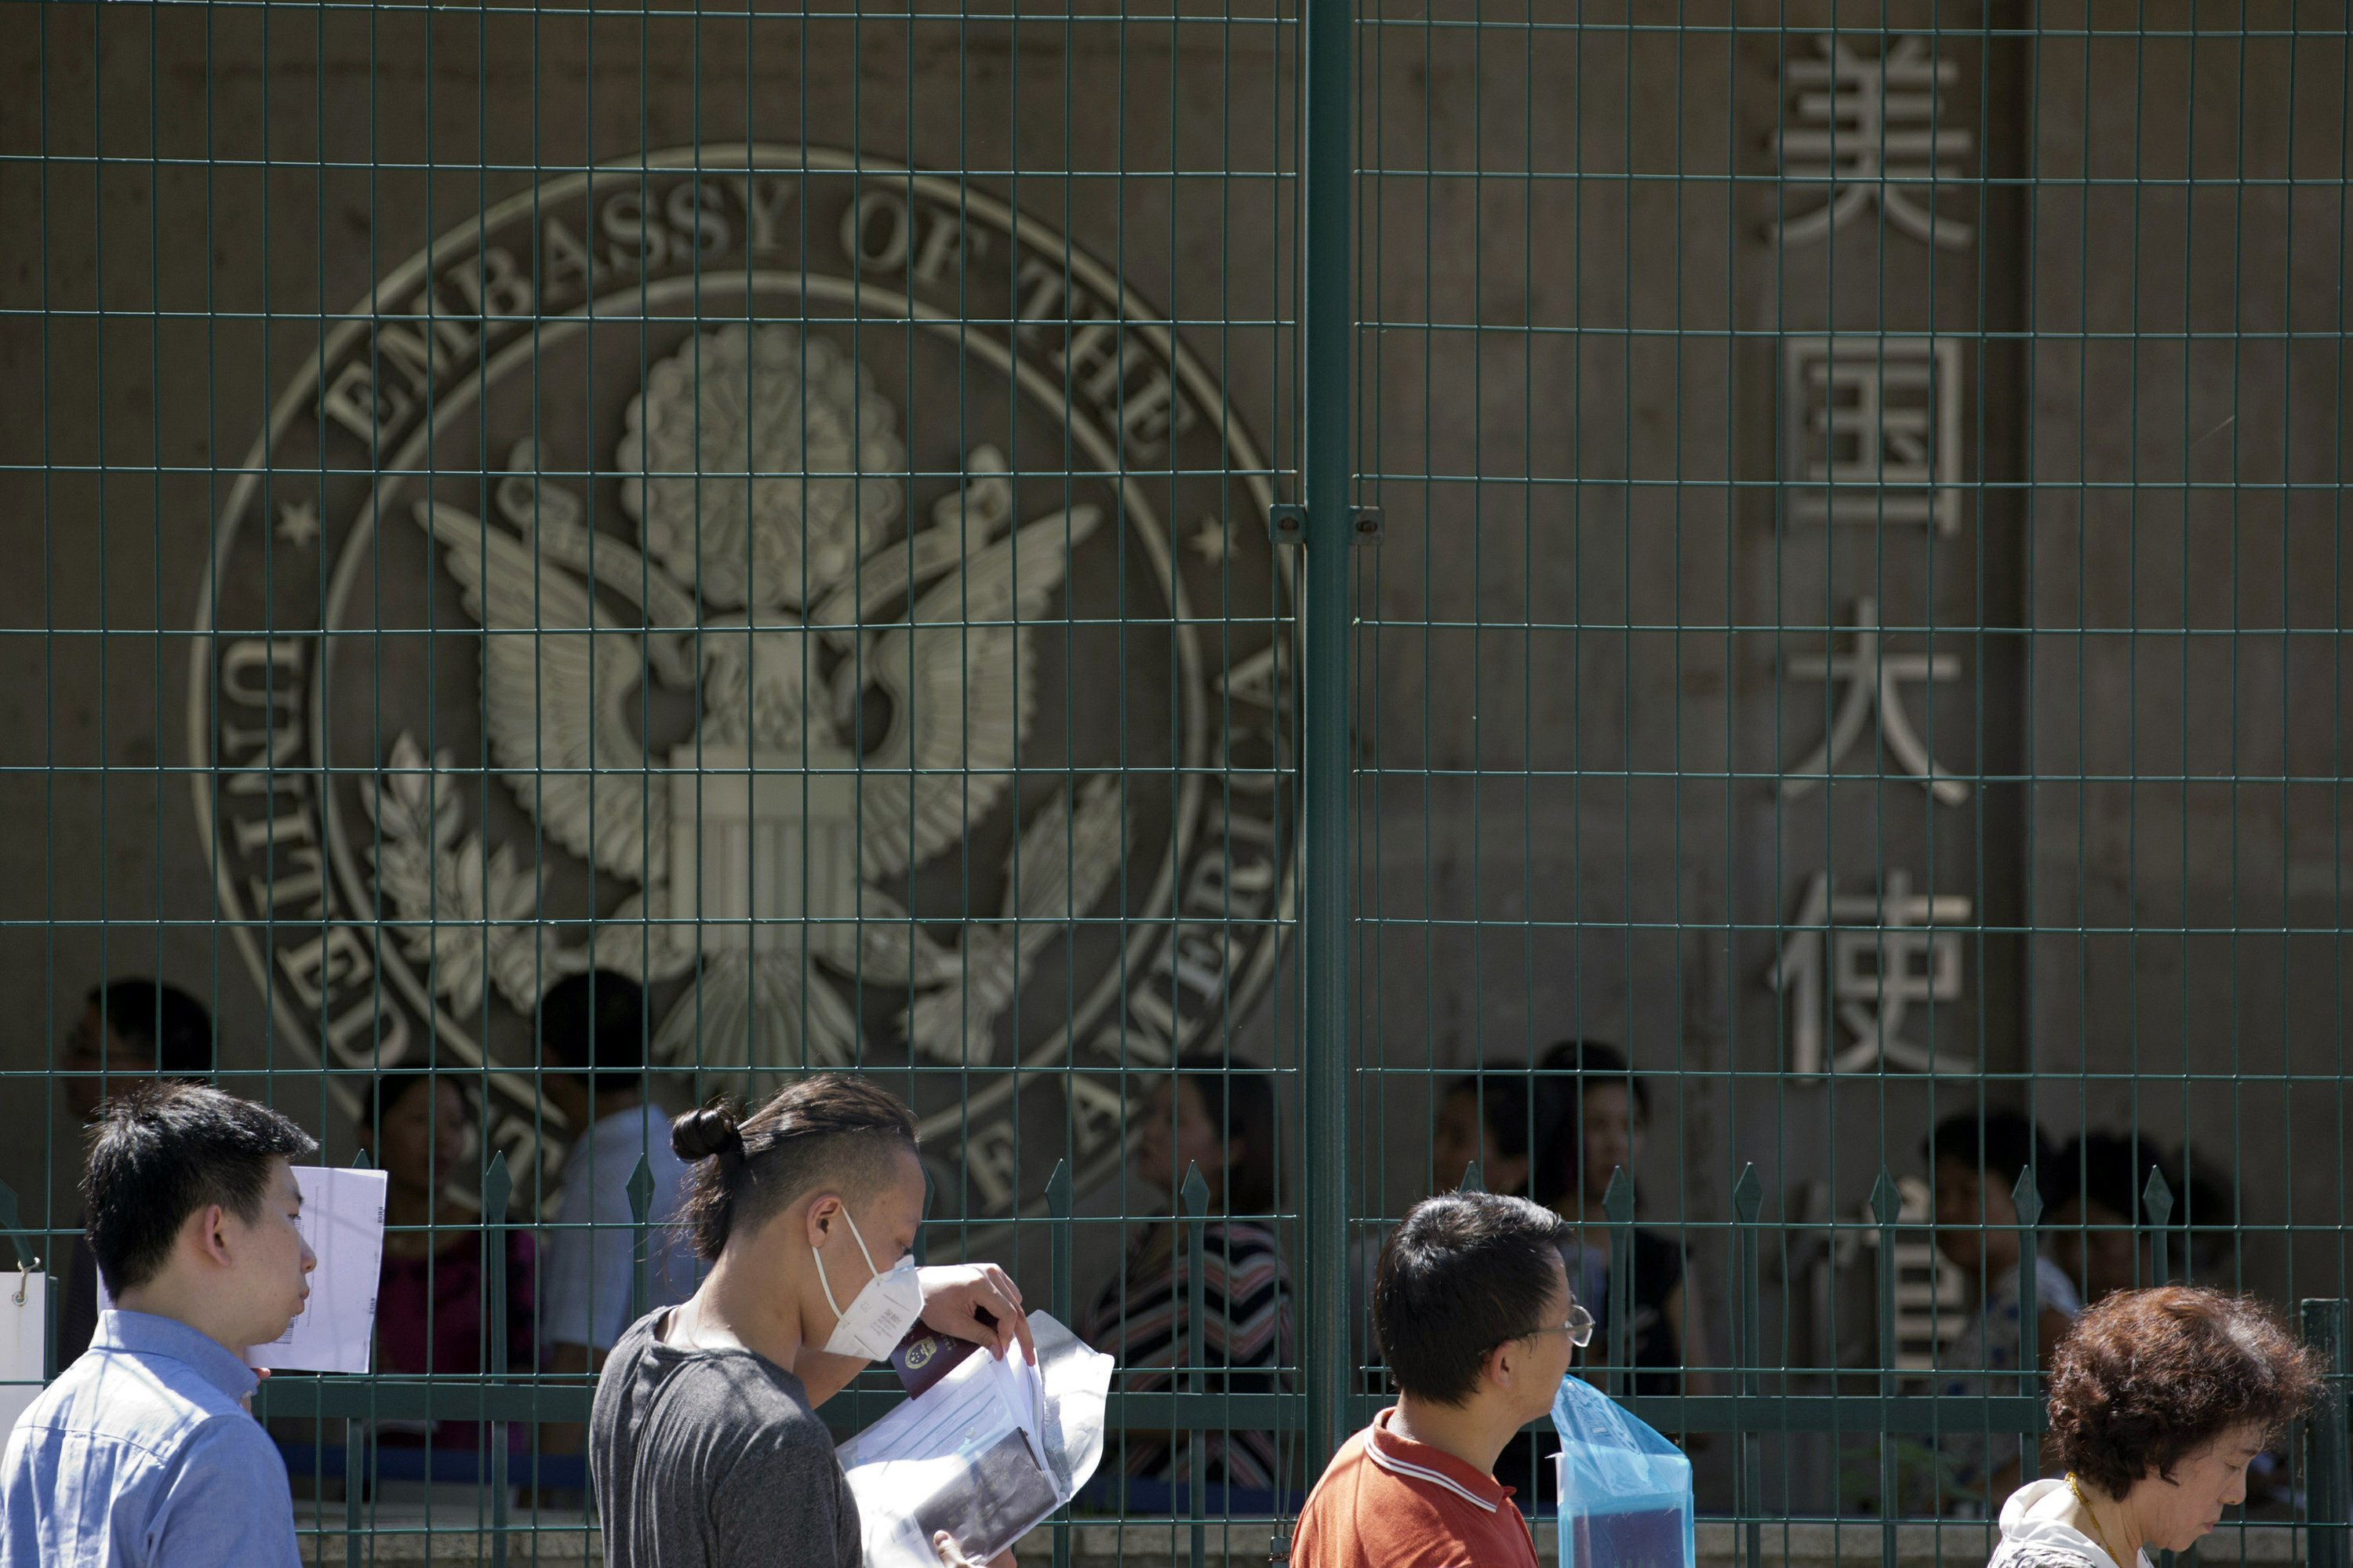 More than 700,000 foreigners overstayed visas last year